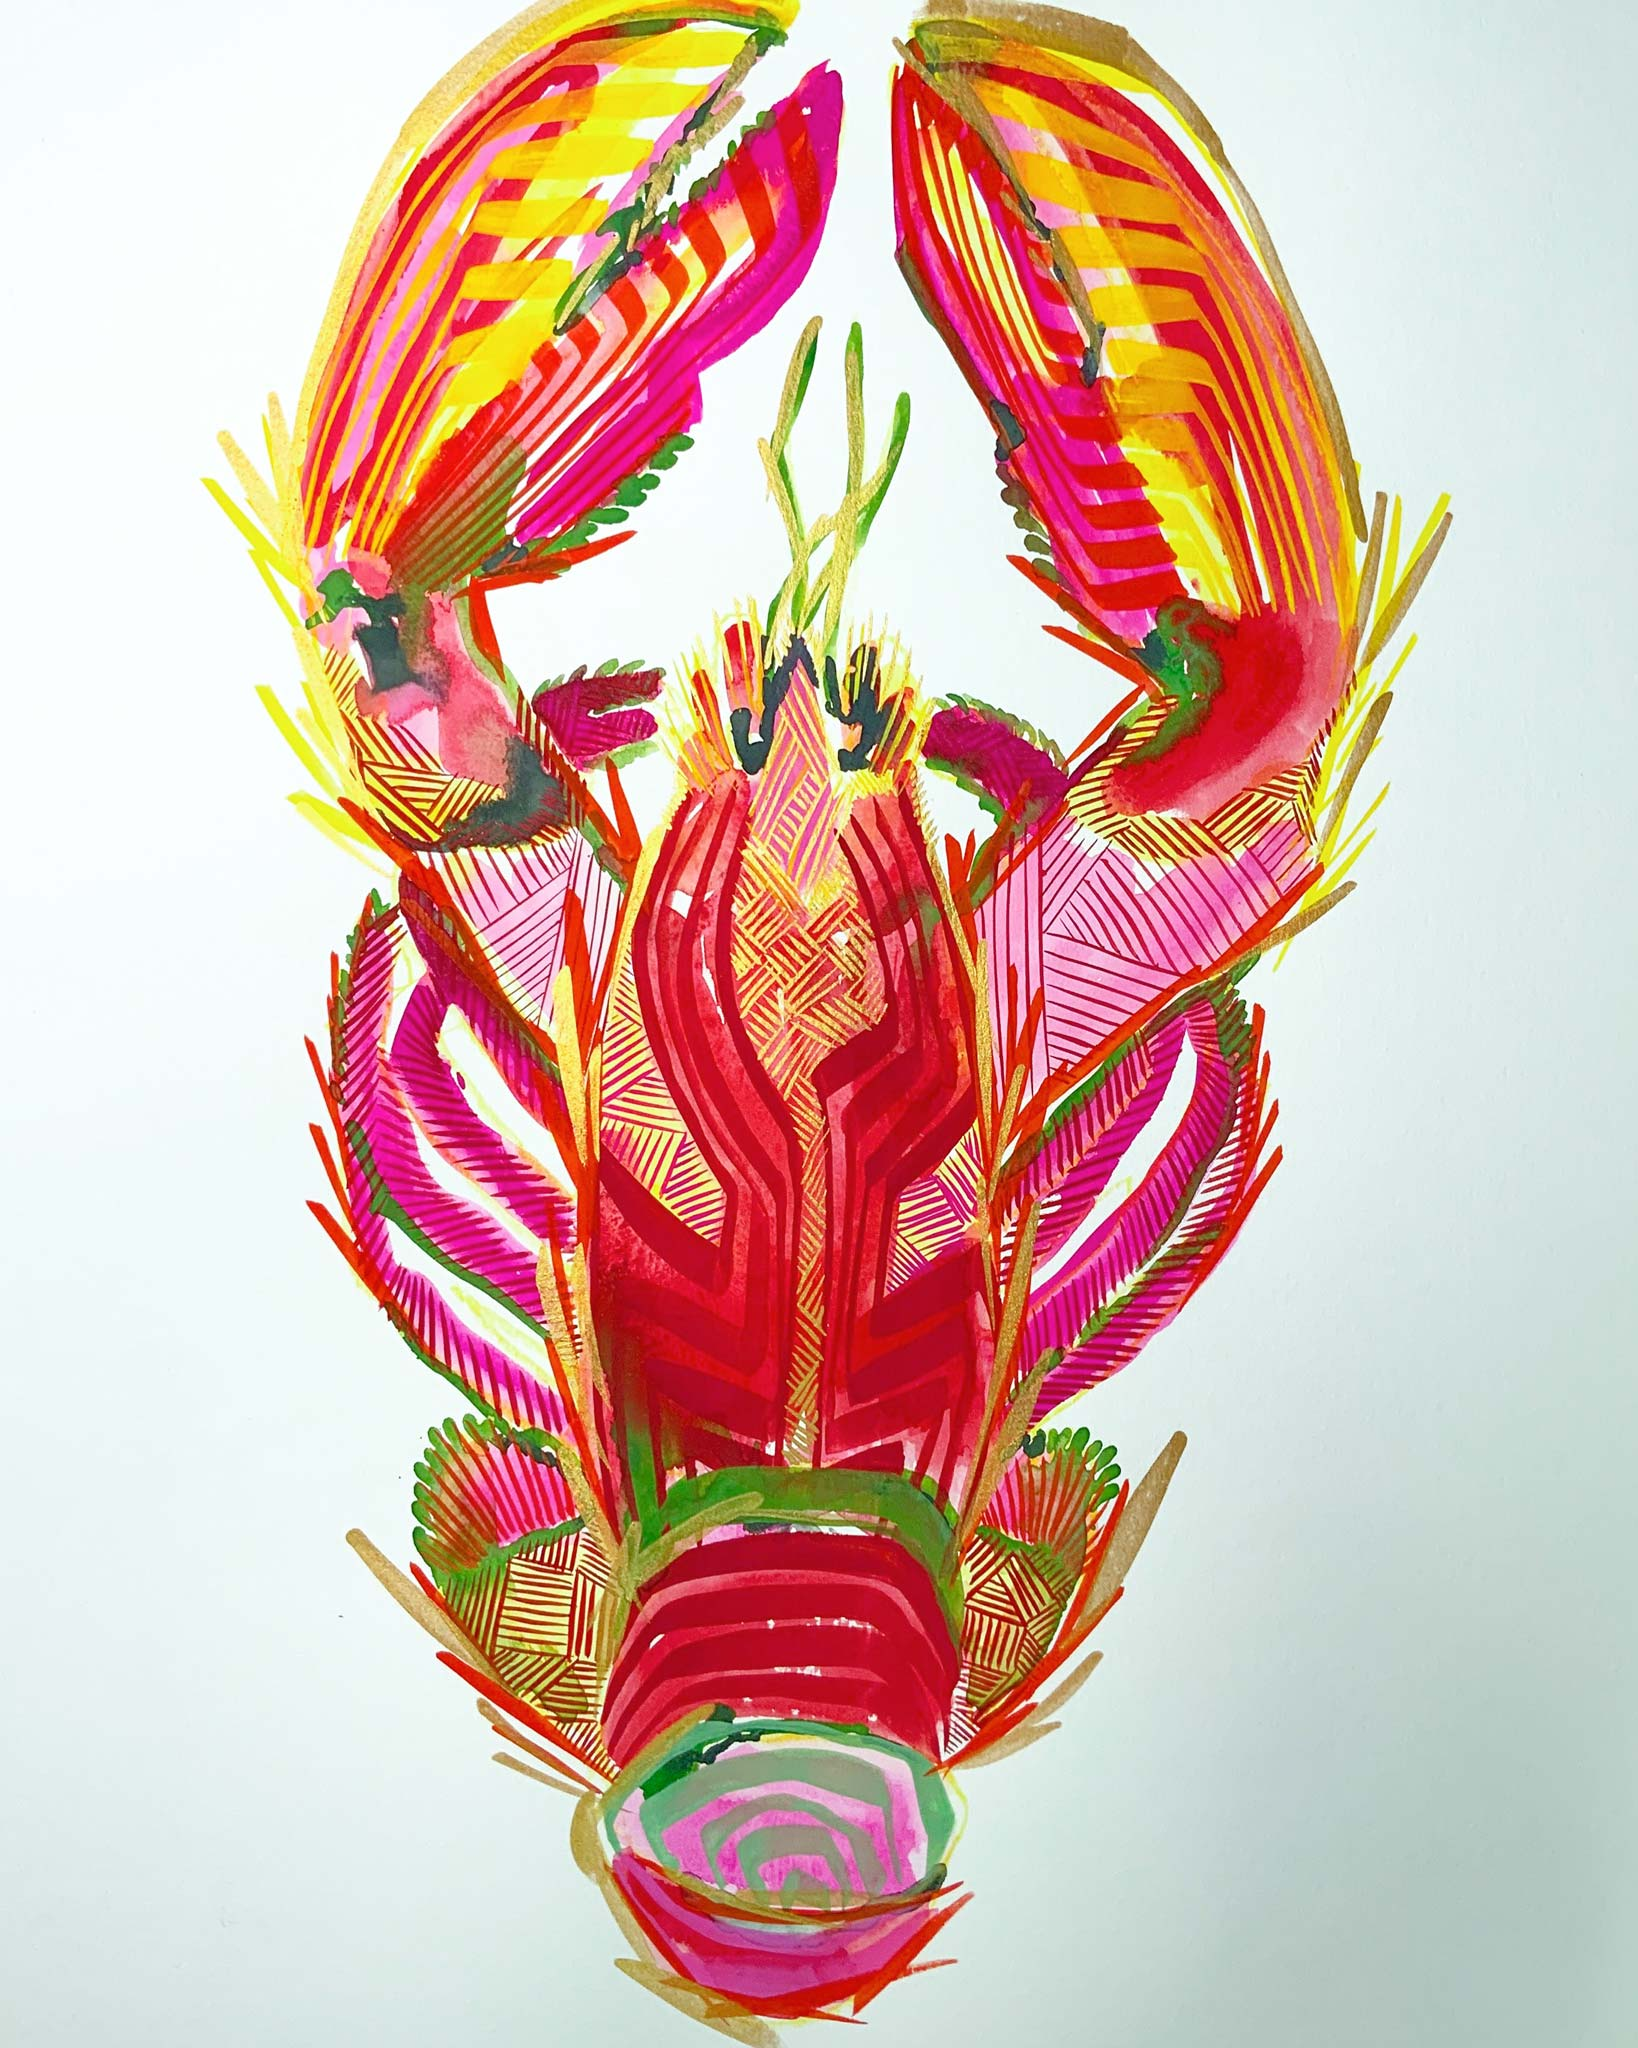 gouache, singular subject lobster in reds, pinks, greens, white ground, bold lines, layered lines create form, graphic style